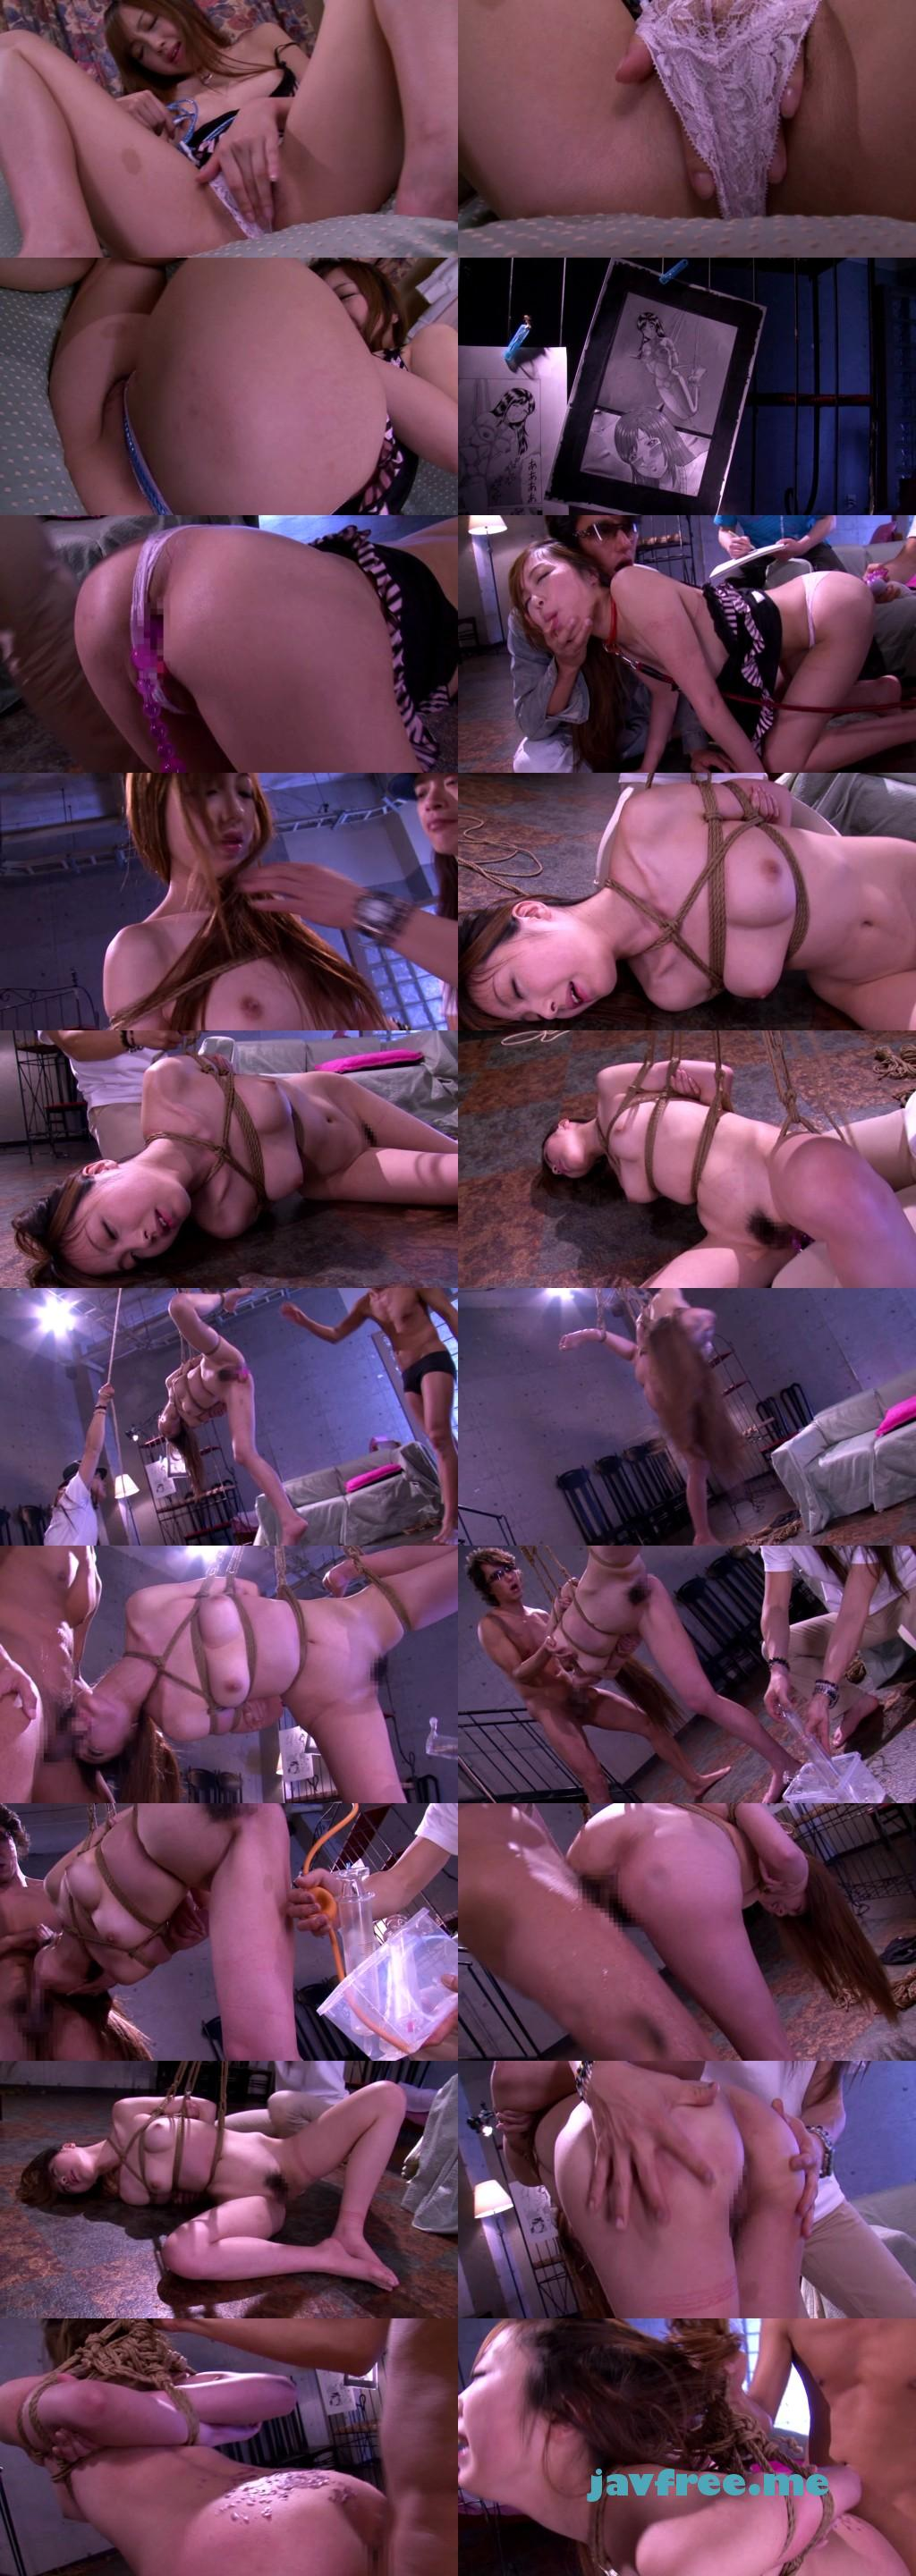 [HD][JBD-151] 邪縛 星崎アンリ - image jbd-151b on https://javfree.me